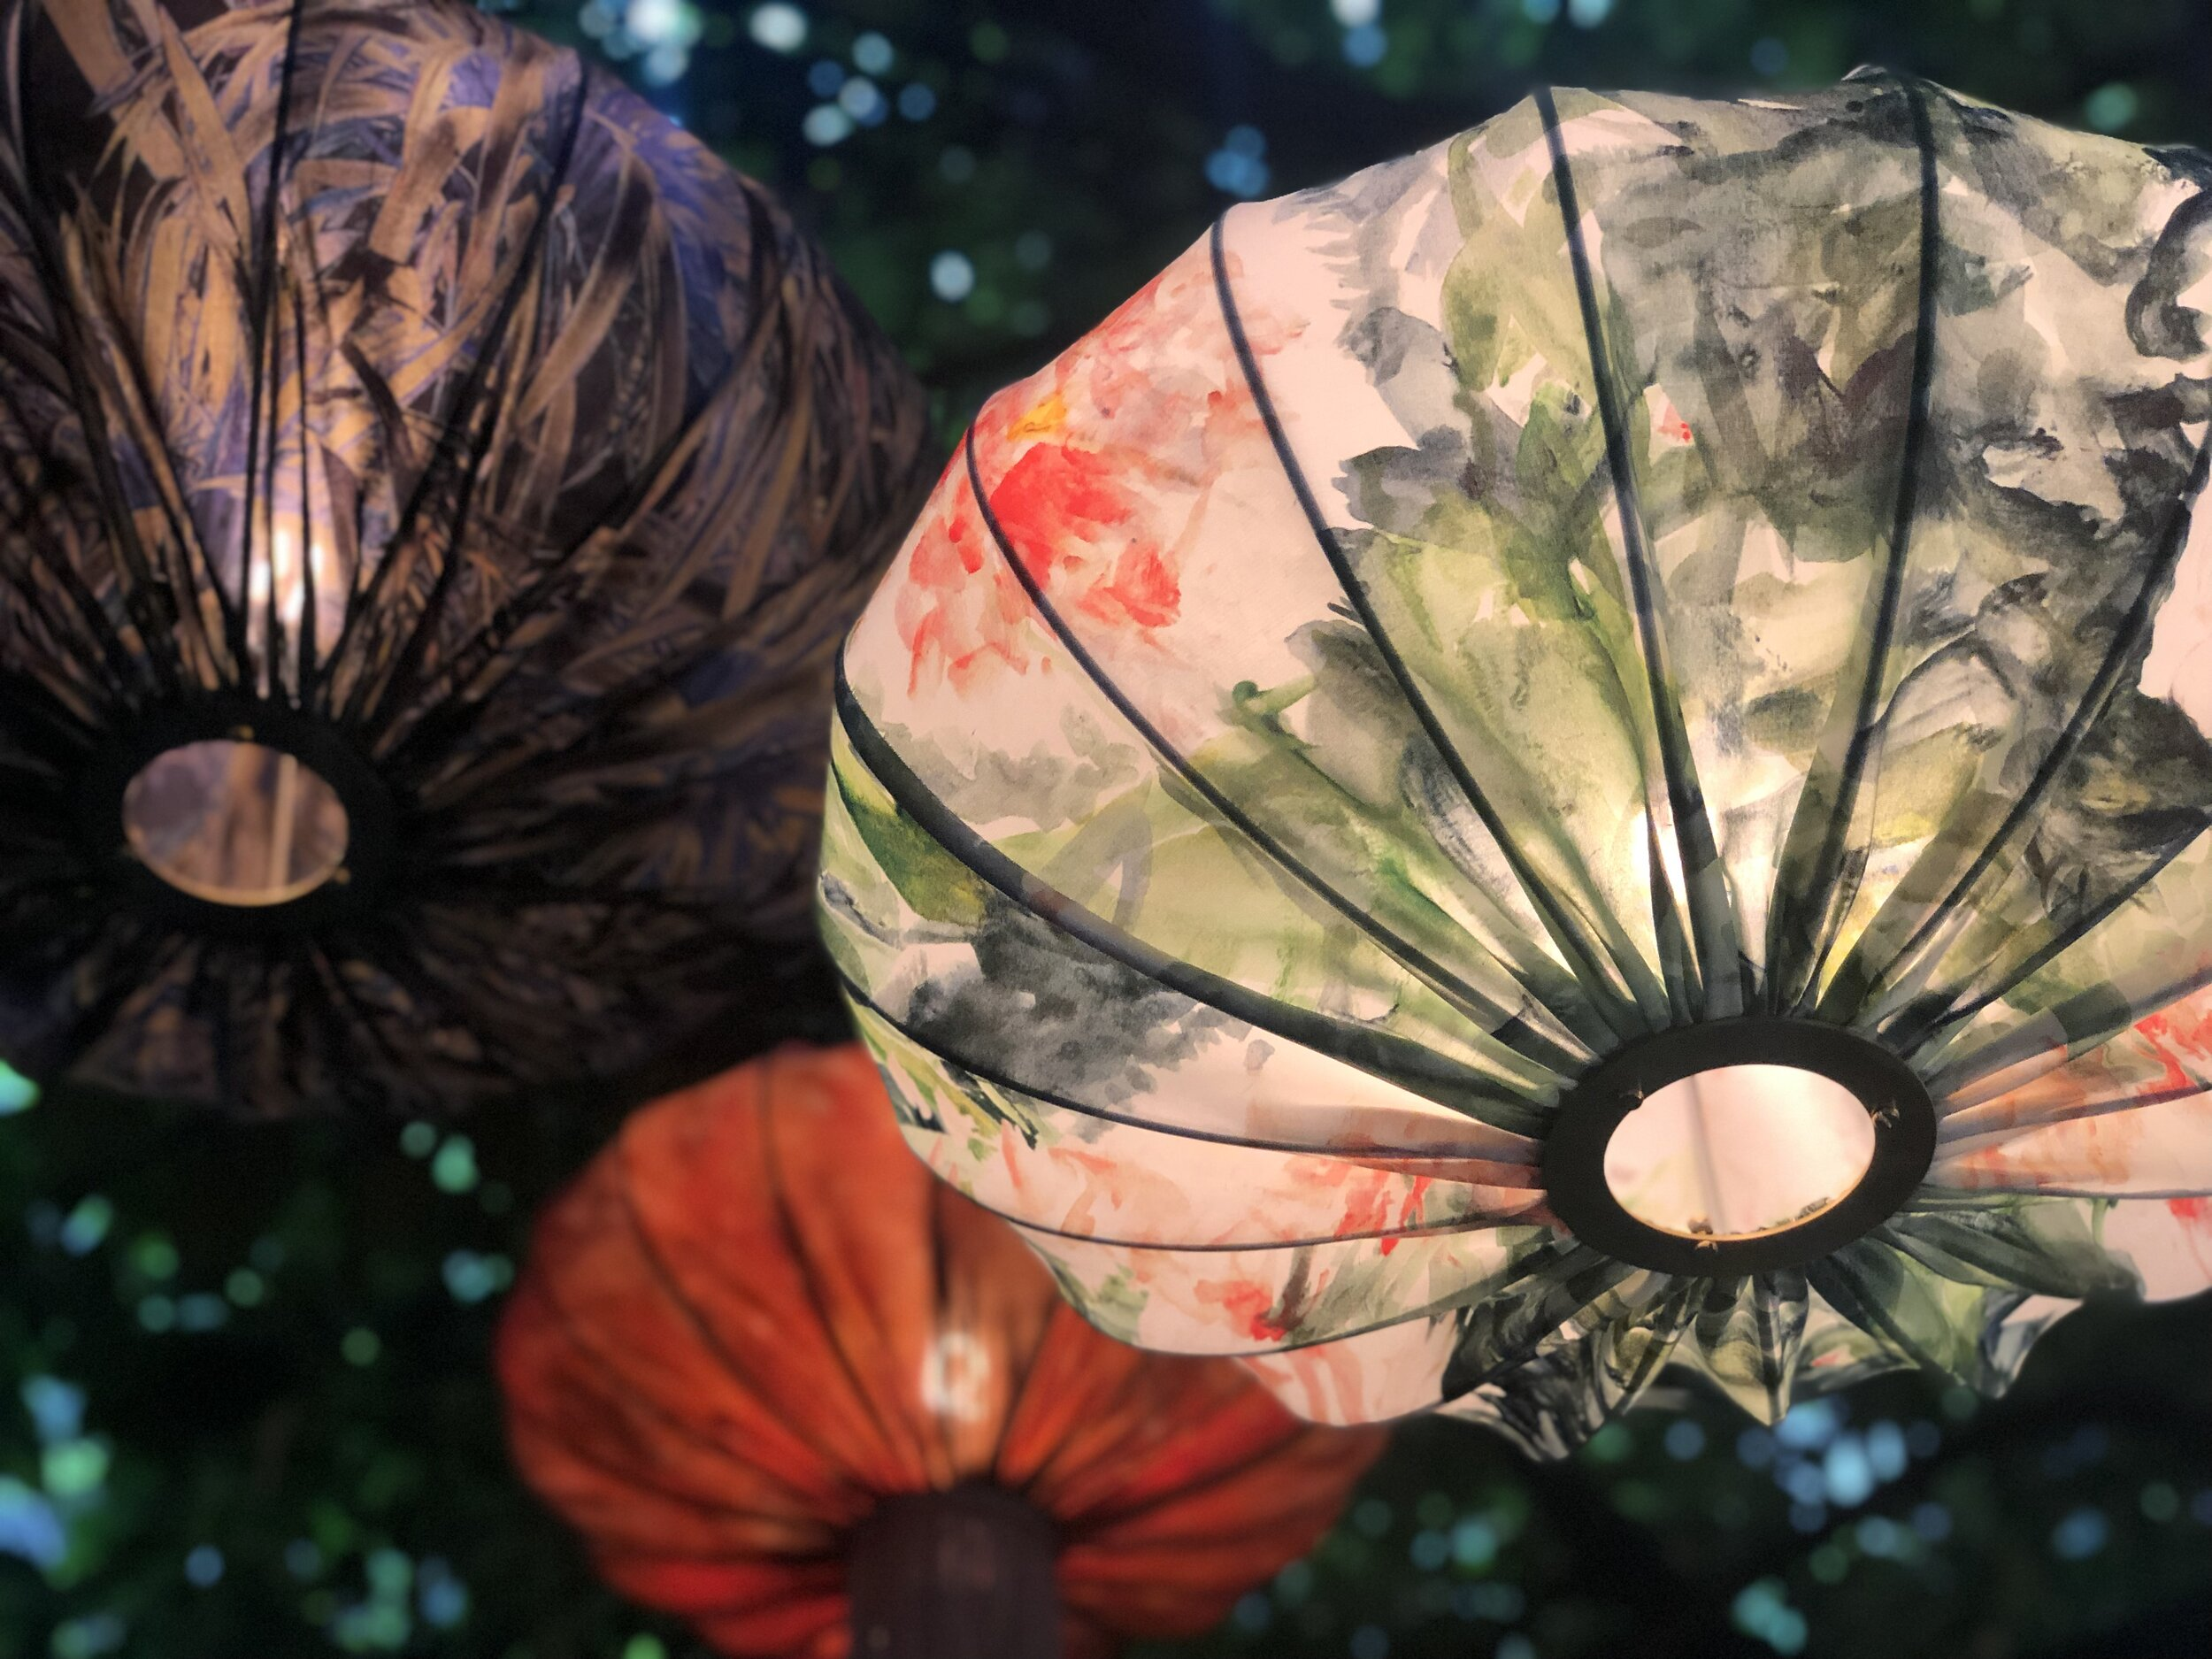 Curiousa & Curiousa will return to Decorex International 2019 (6-9 October) on stand F160, but also have an     Ume Silk Lantern       in our Garden Is Sanctuary print featured in the Design Encounter zone.